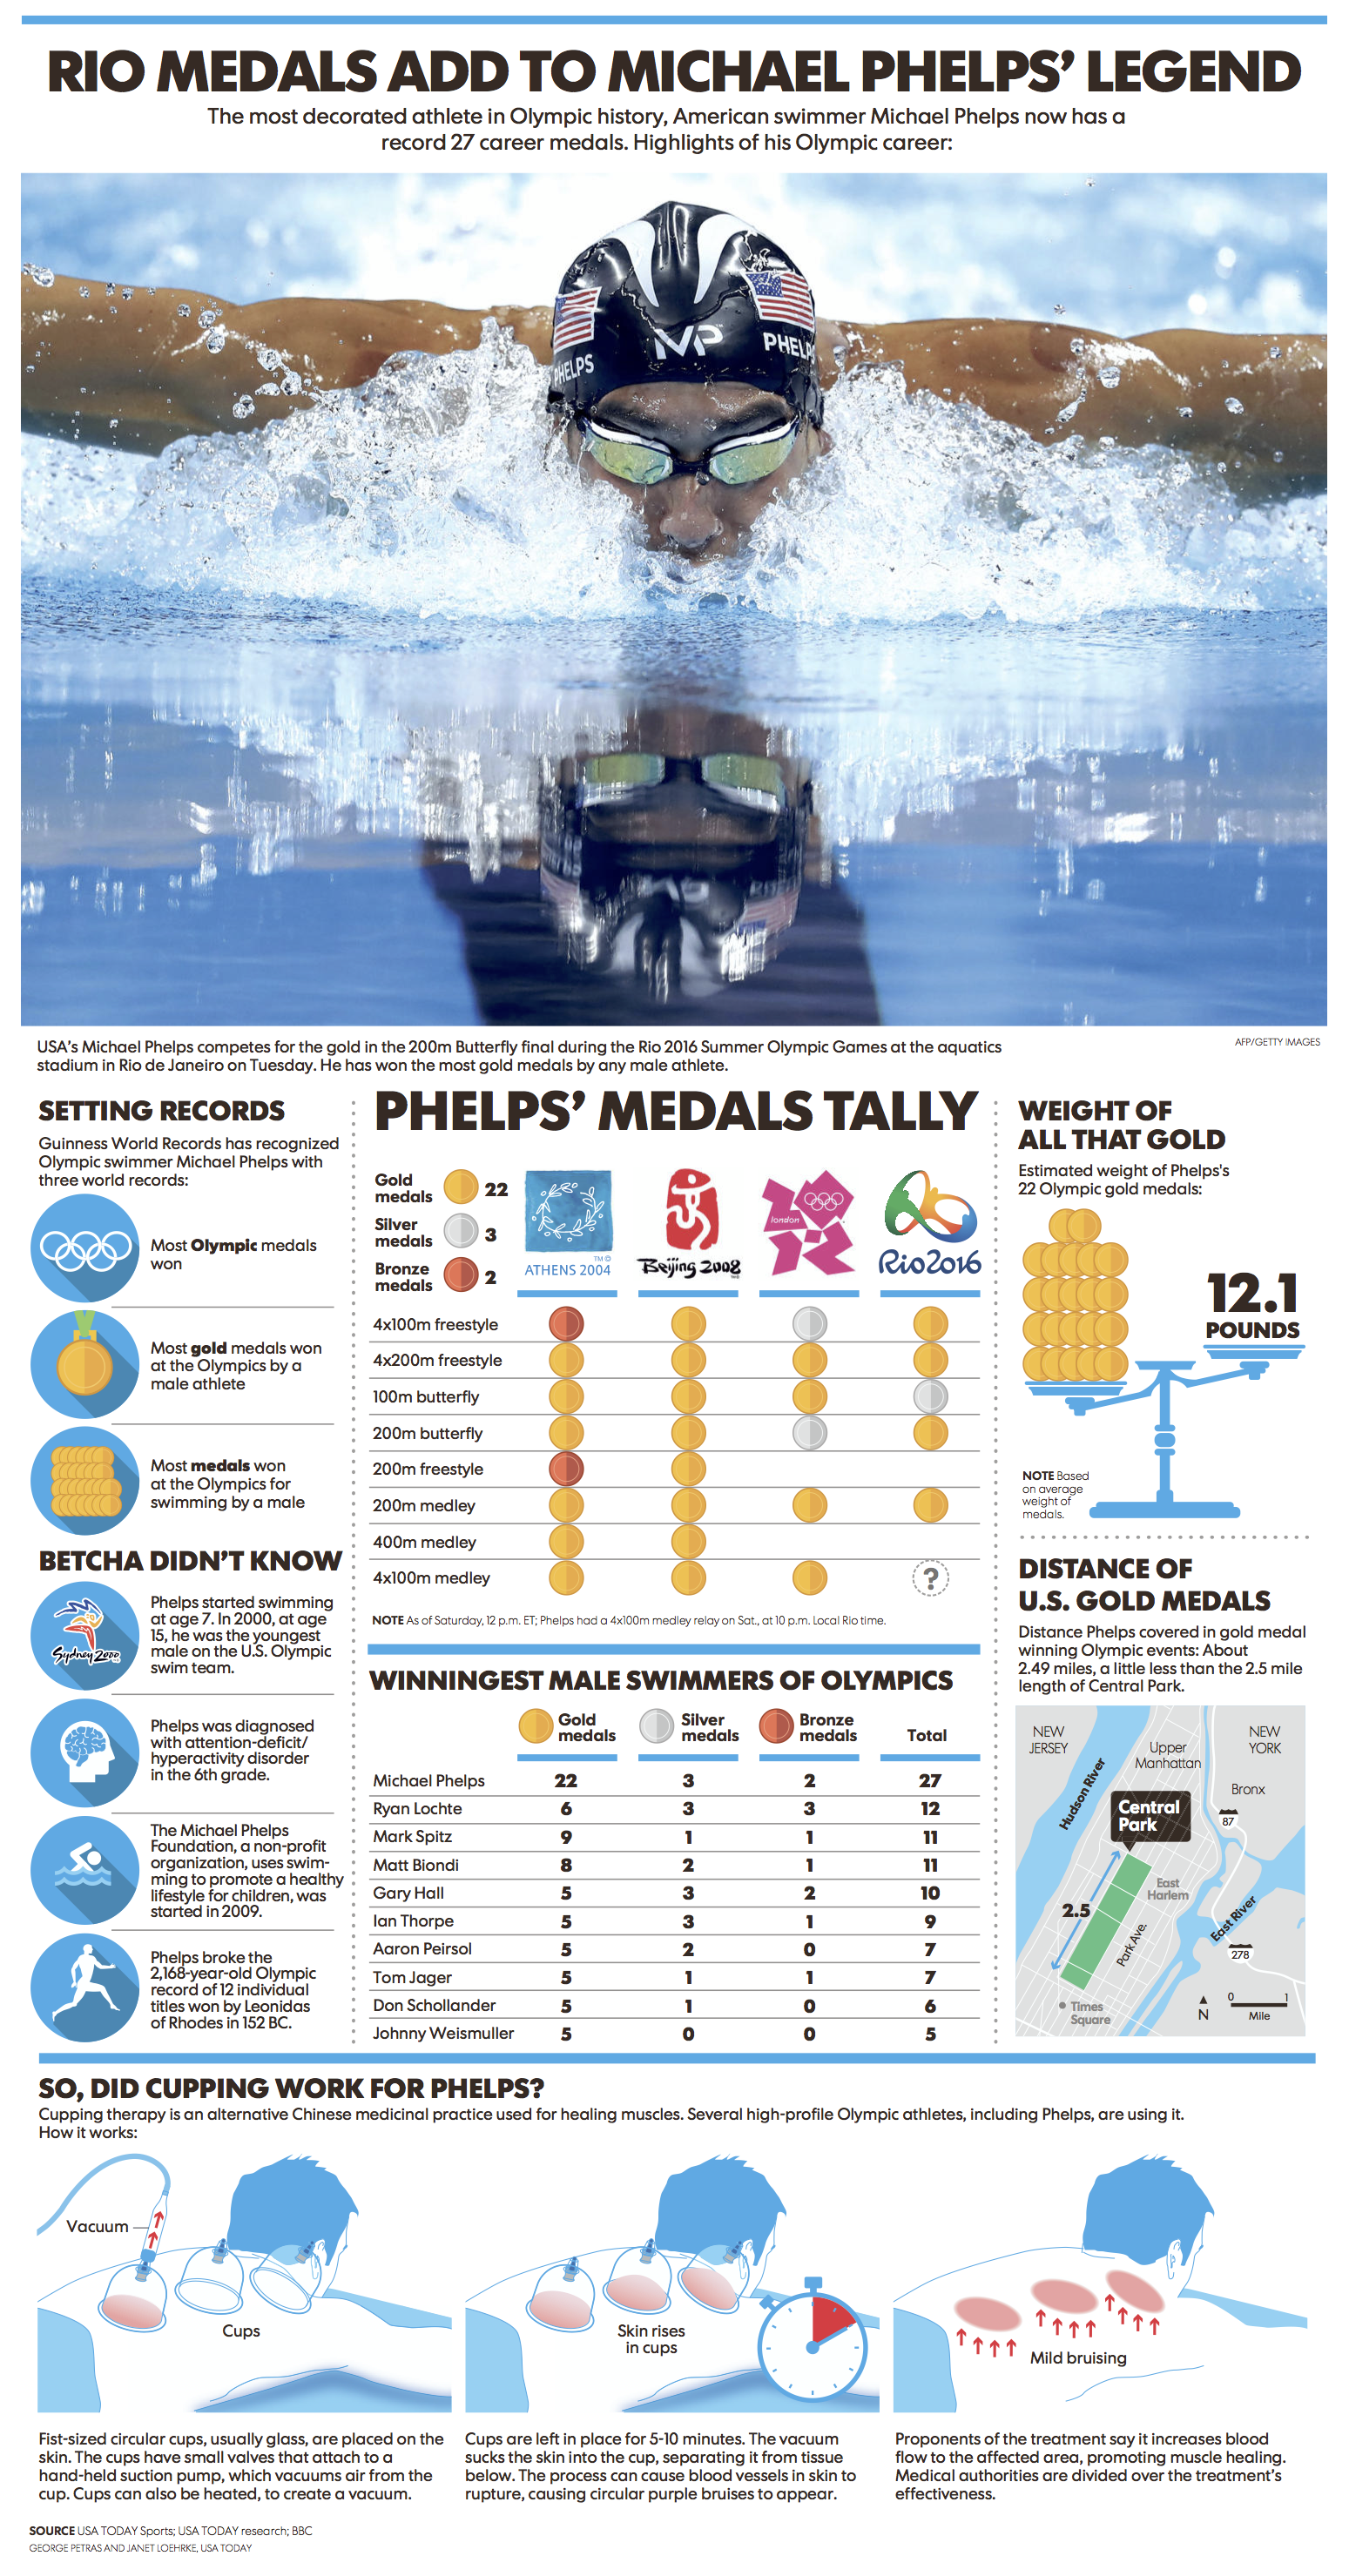 Rio's medals add to Michael Phelps' legend